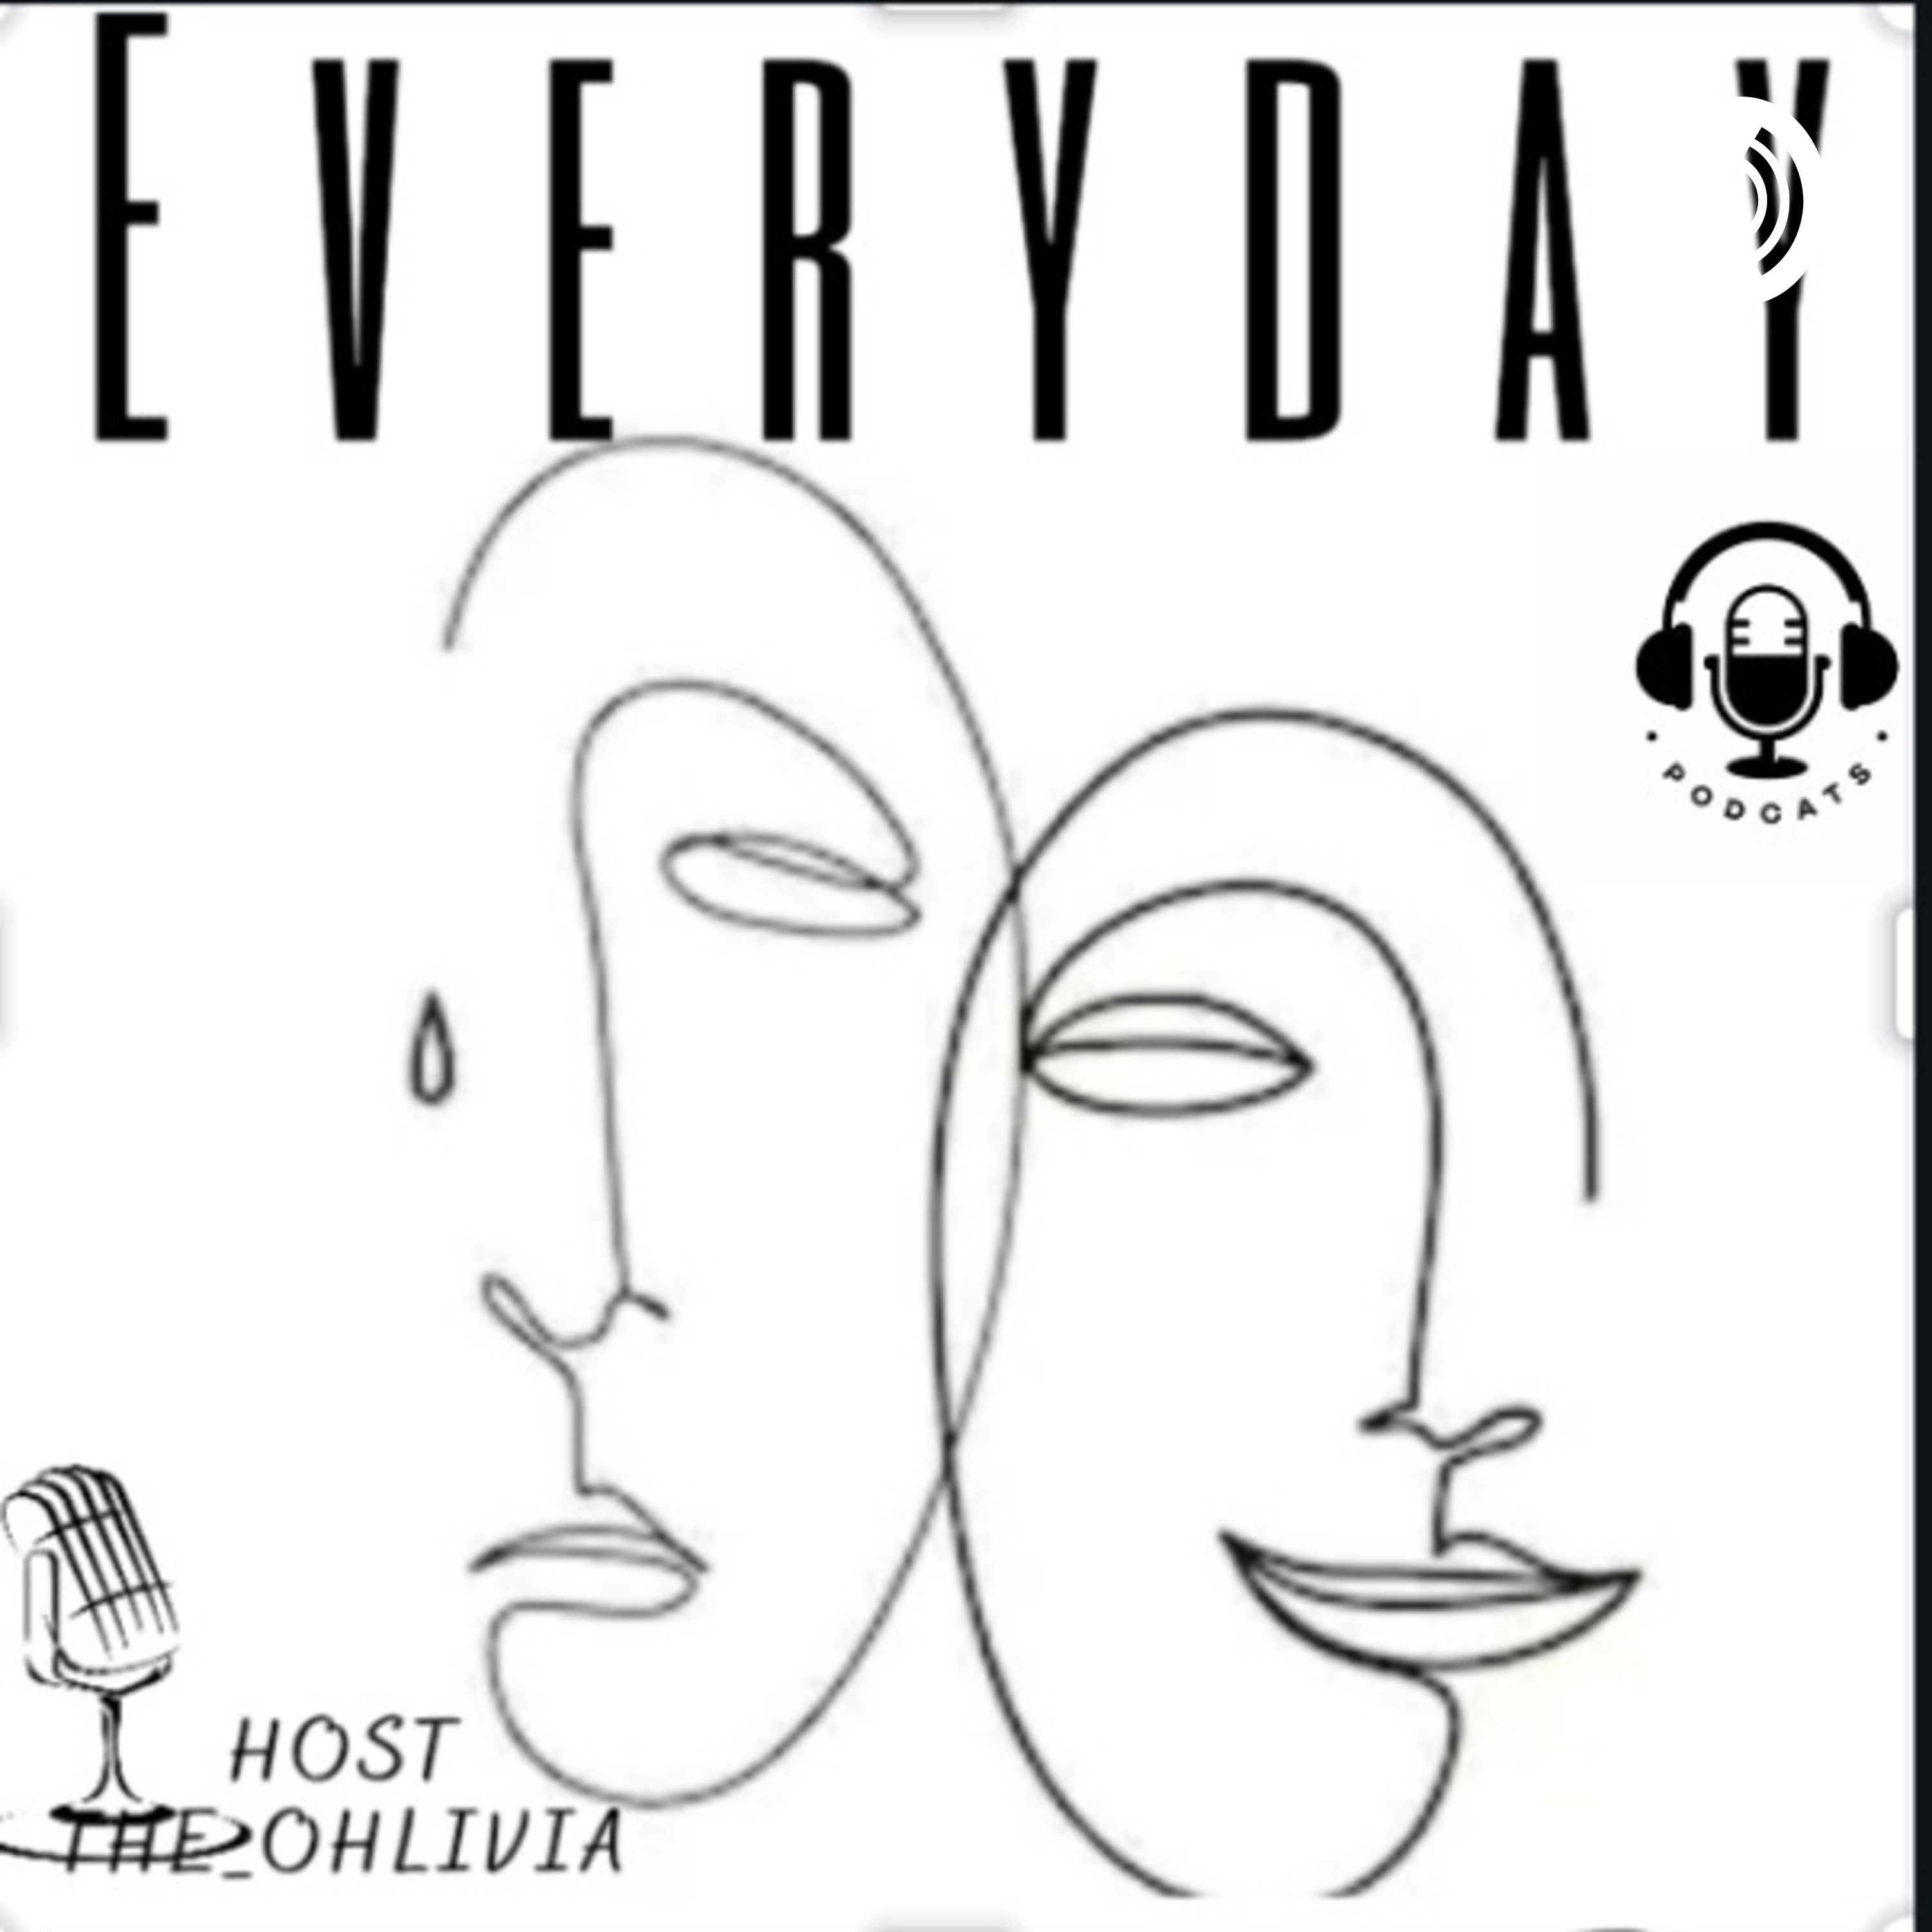 The Everyday Podcast podcast